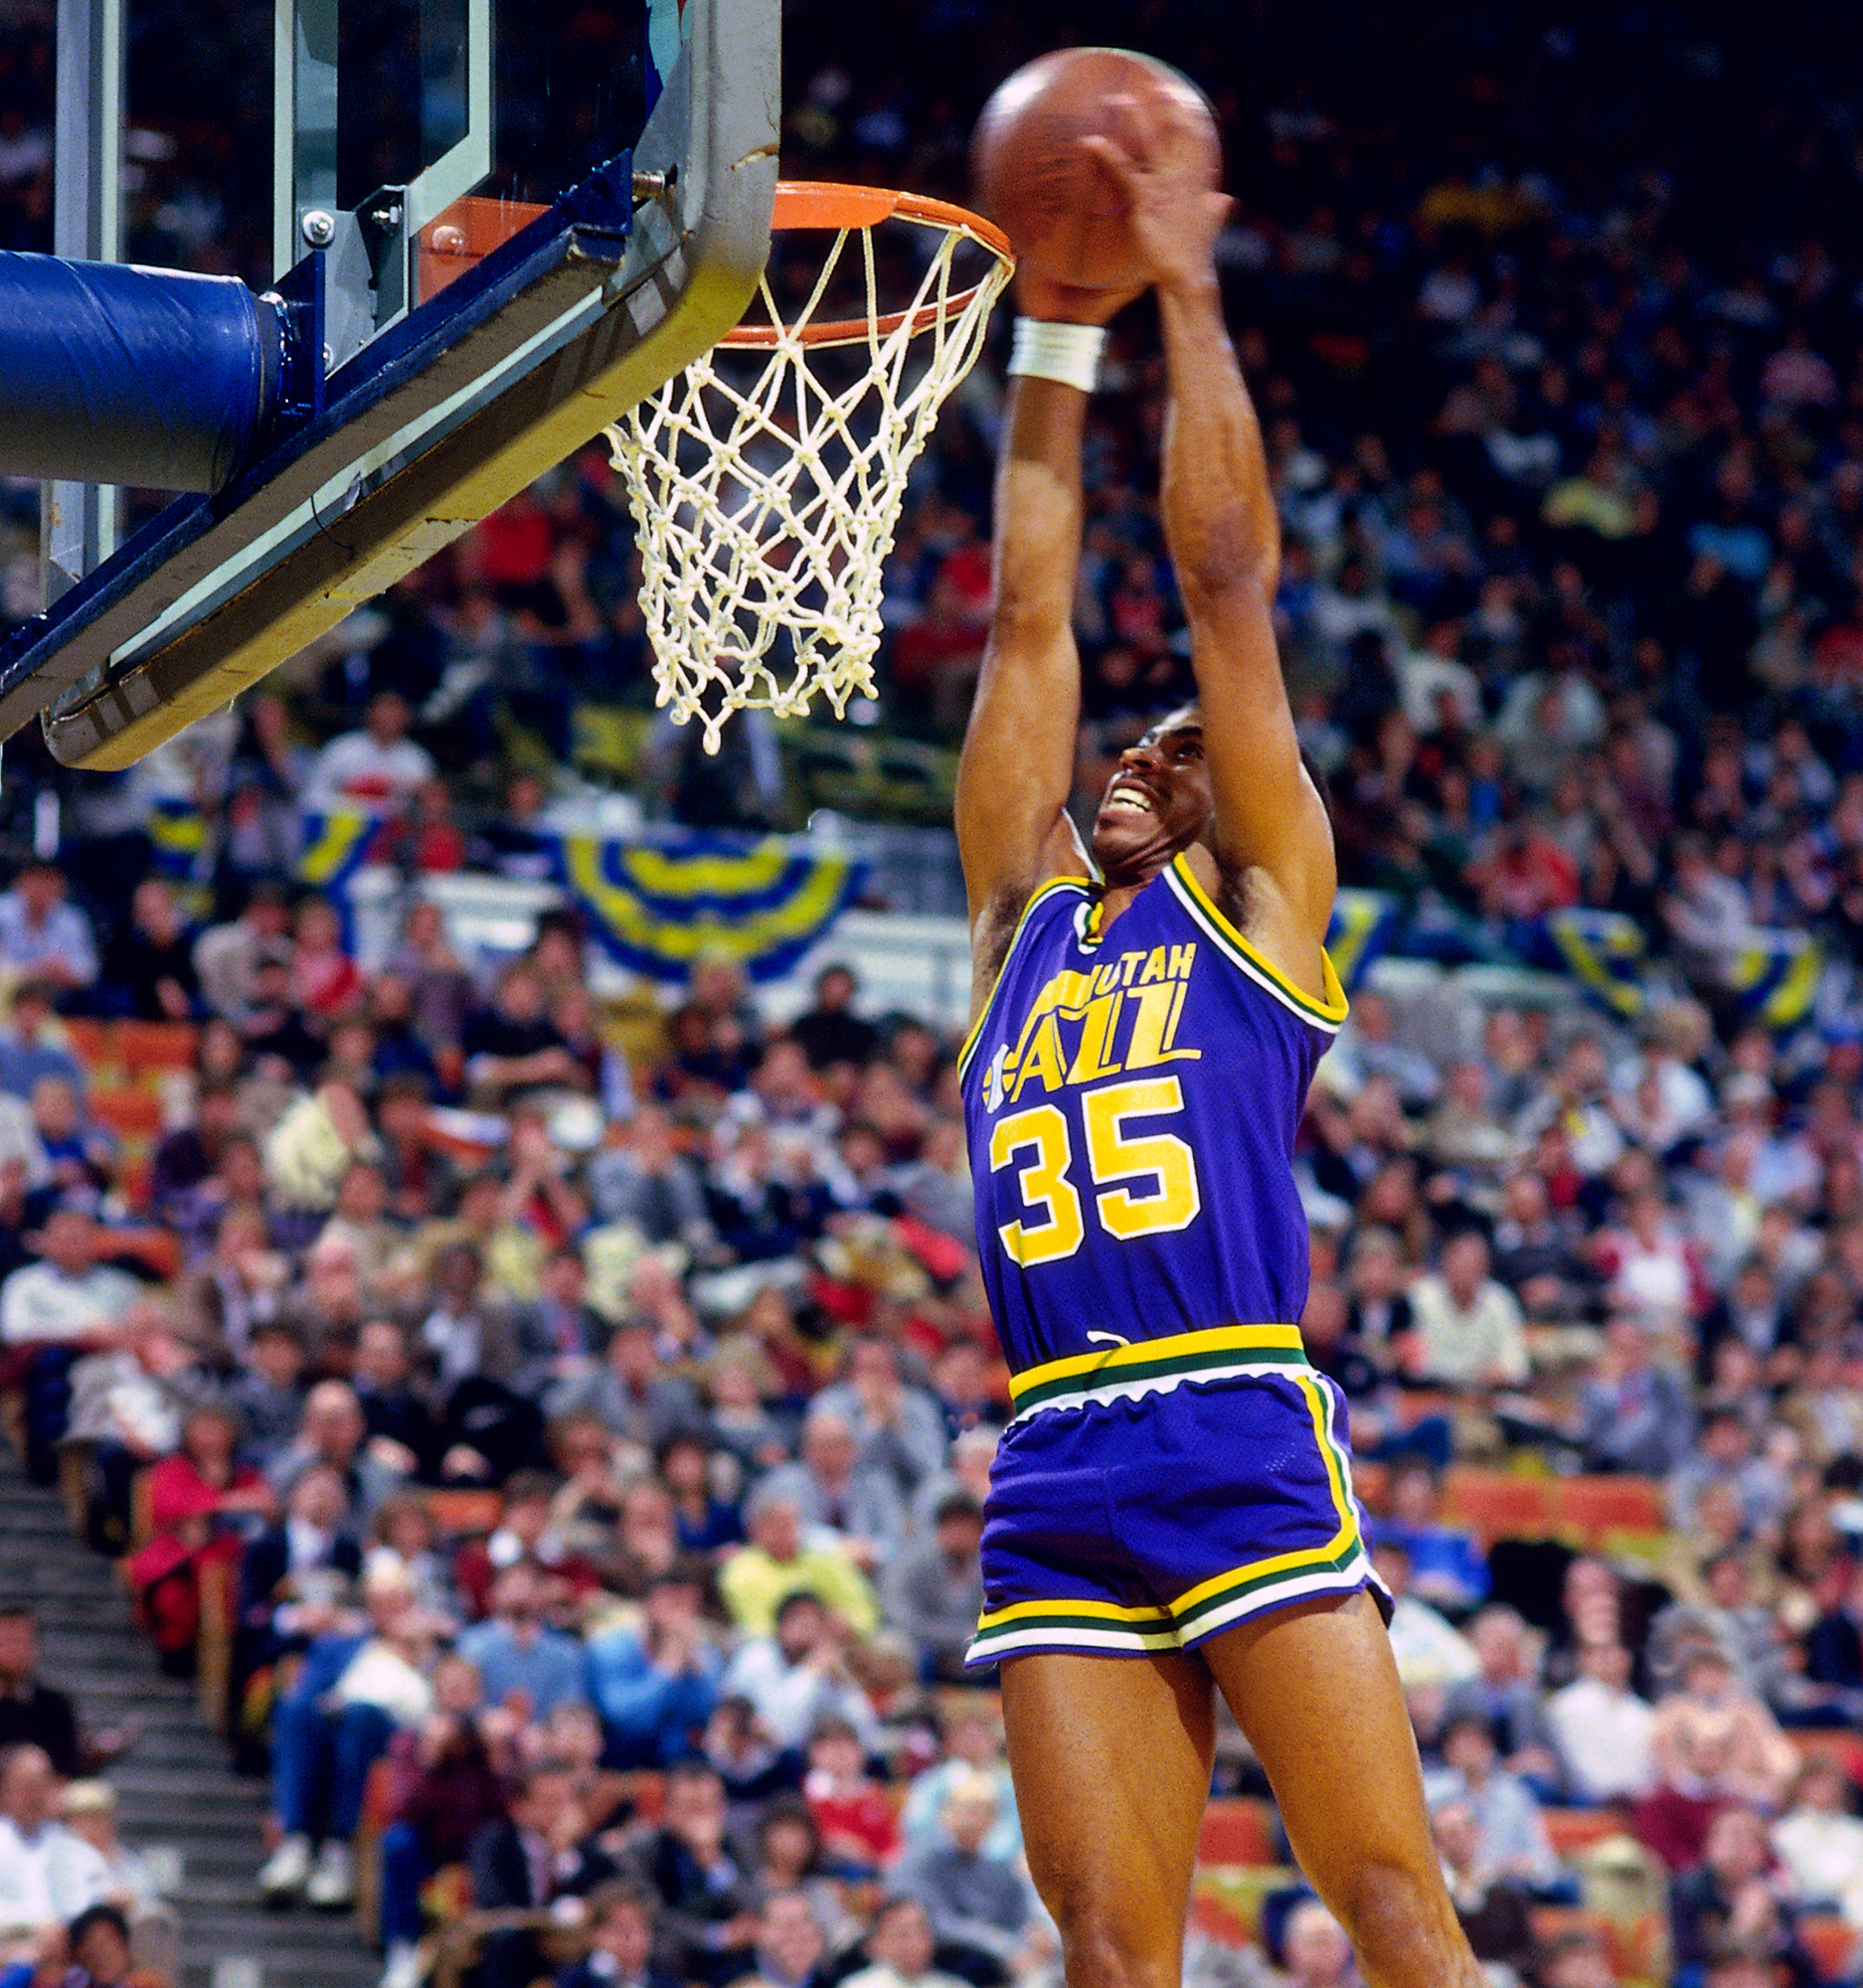 9e2d1a1bd Darrell Griffith of the Utah Jazz dunks the ball during the Slam Dunk  contest as part of the 1985 NBA All-Star Game at the Hoosier Dome in  Indianapolis on ...